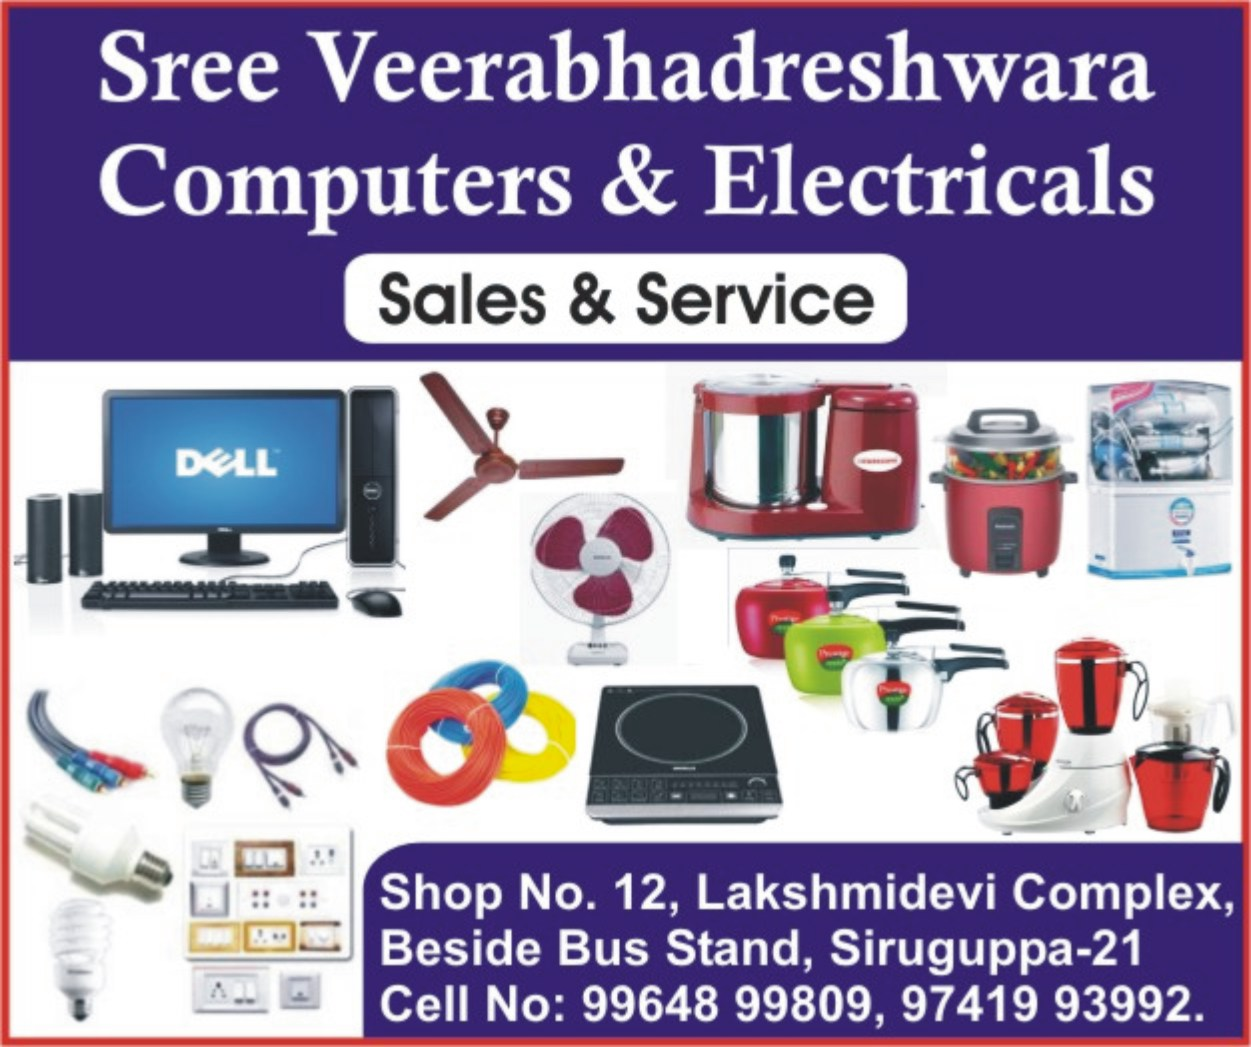 Sree Veerabhadreshwara Computers & Electricals